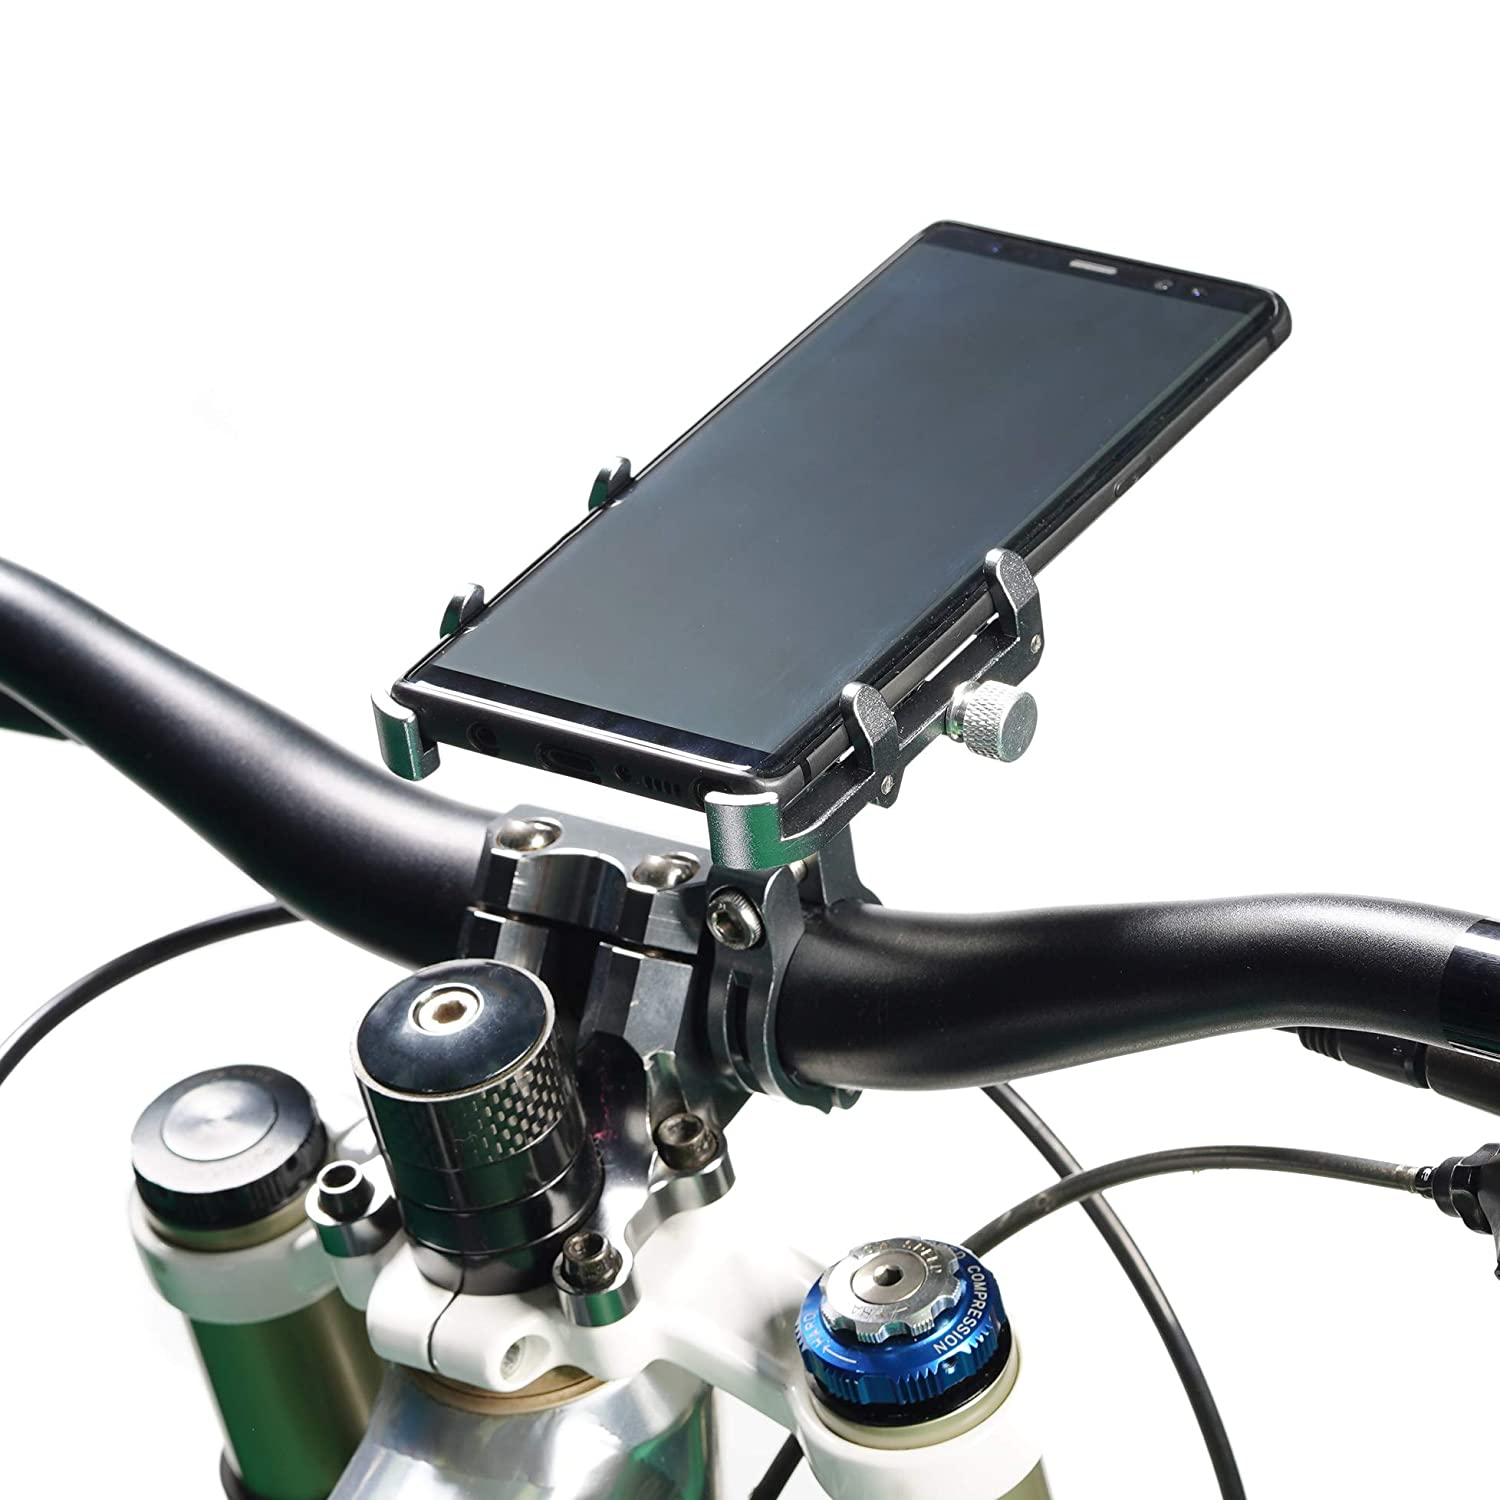 Universal Bicycle and Motorcycle of Phone Holder Using Aluminum Alloy Compatibie with of Phones and inBlack,Titanium and Silver(GUB360 Rotation)